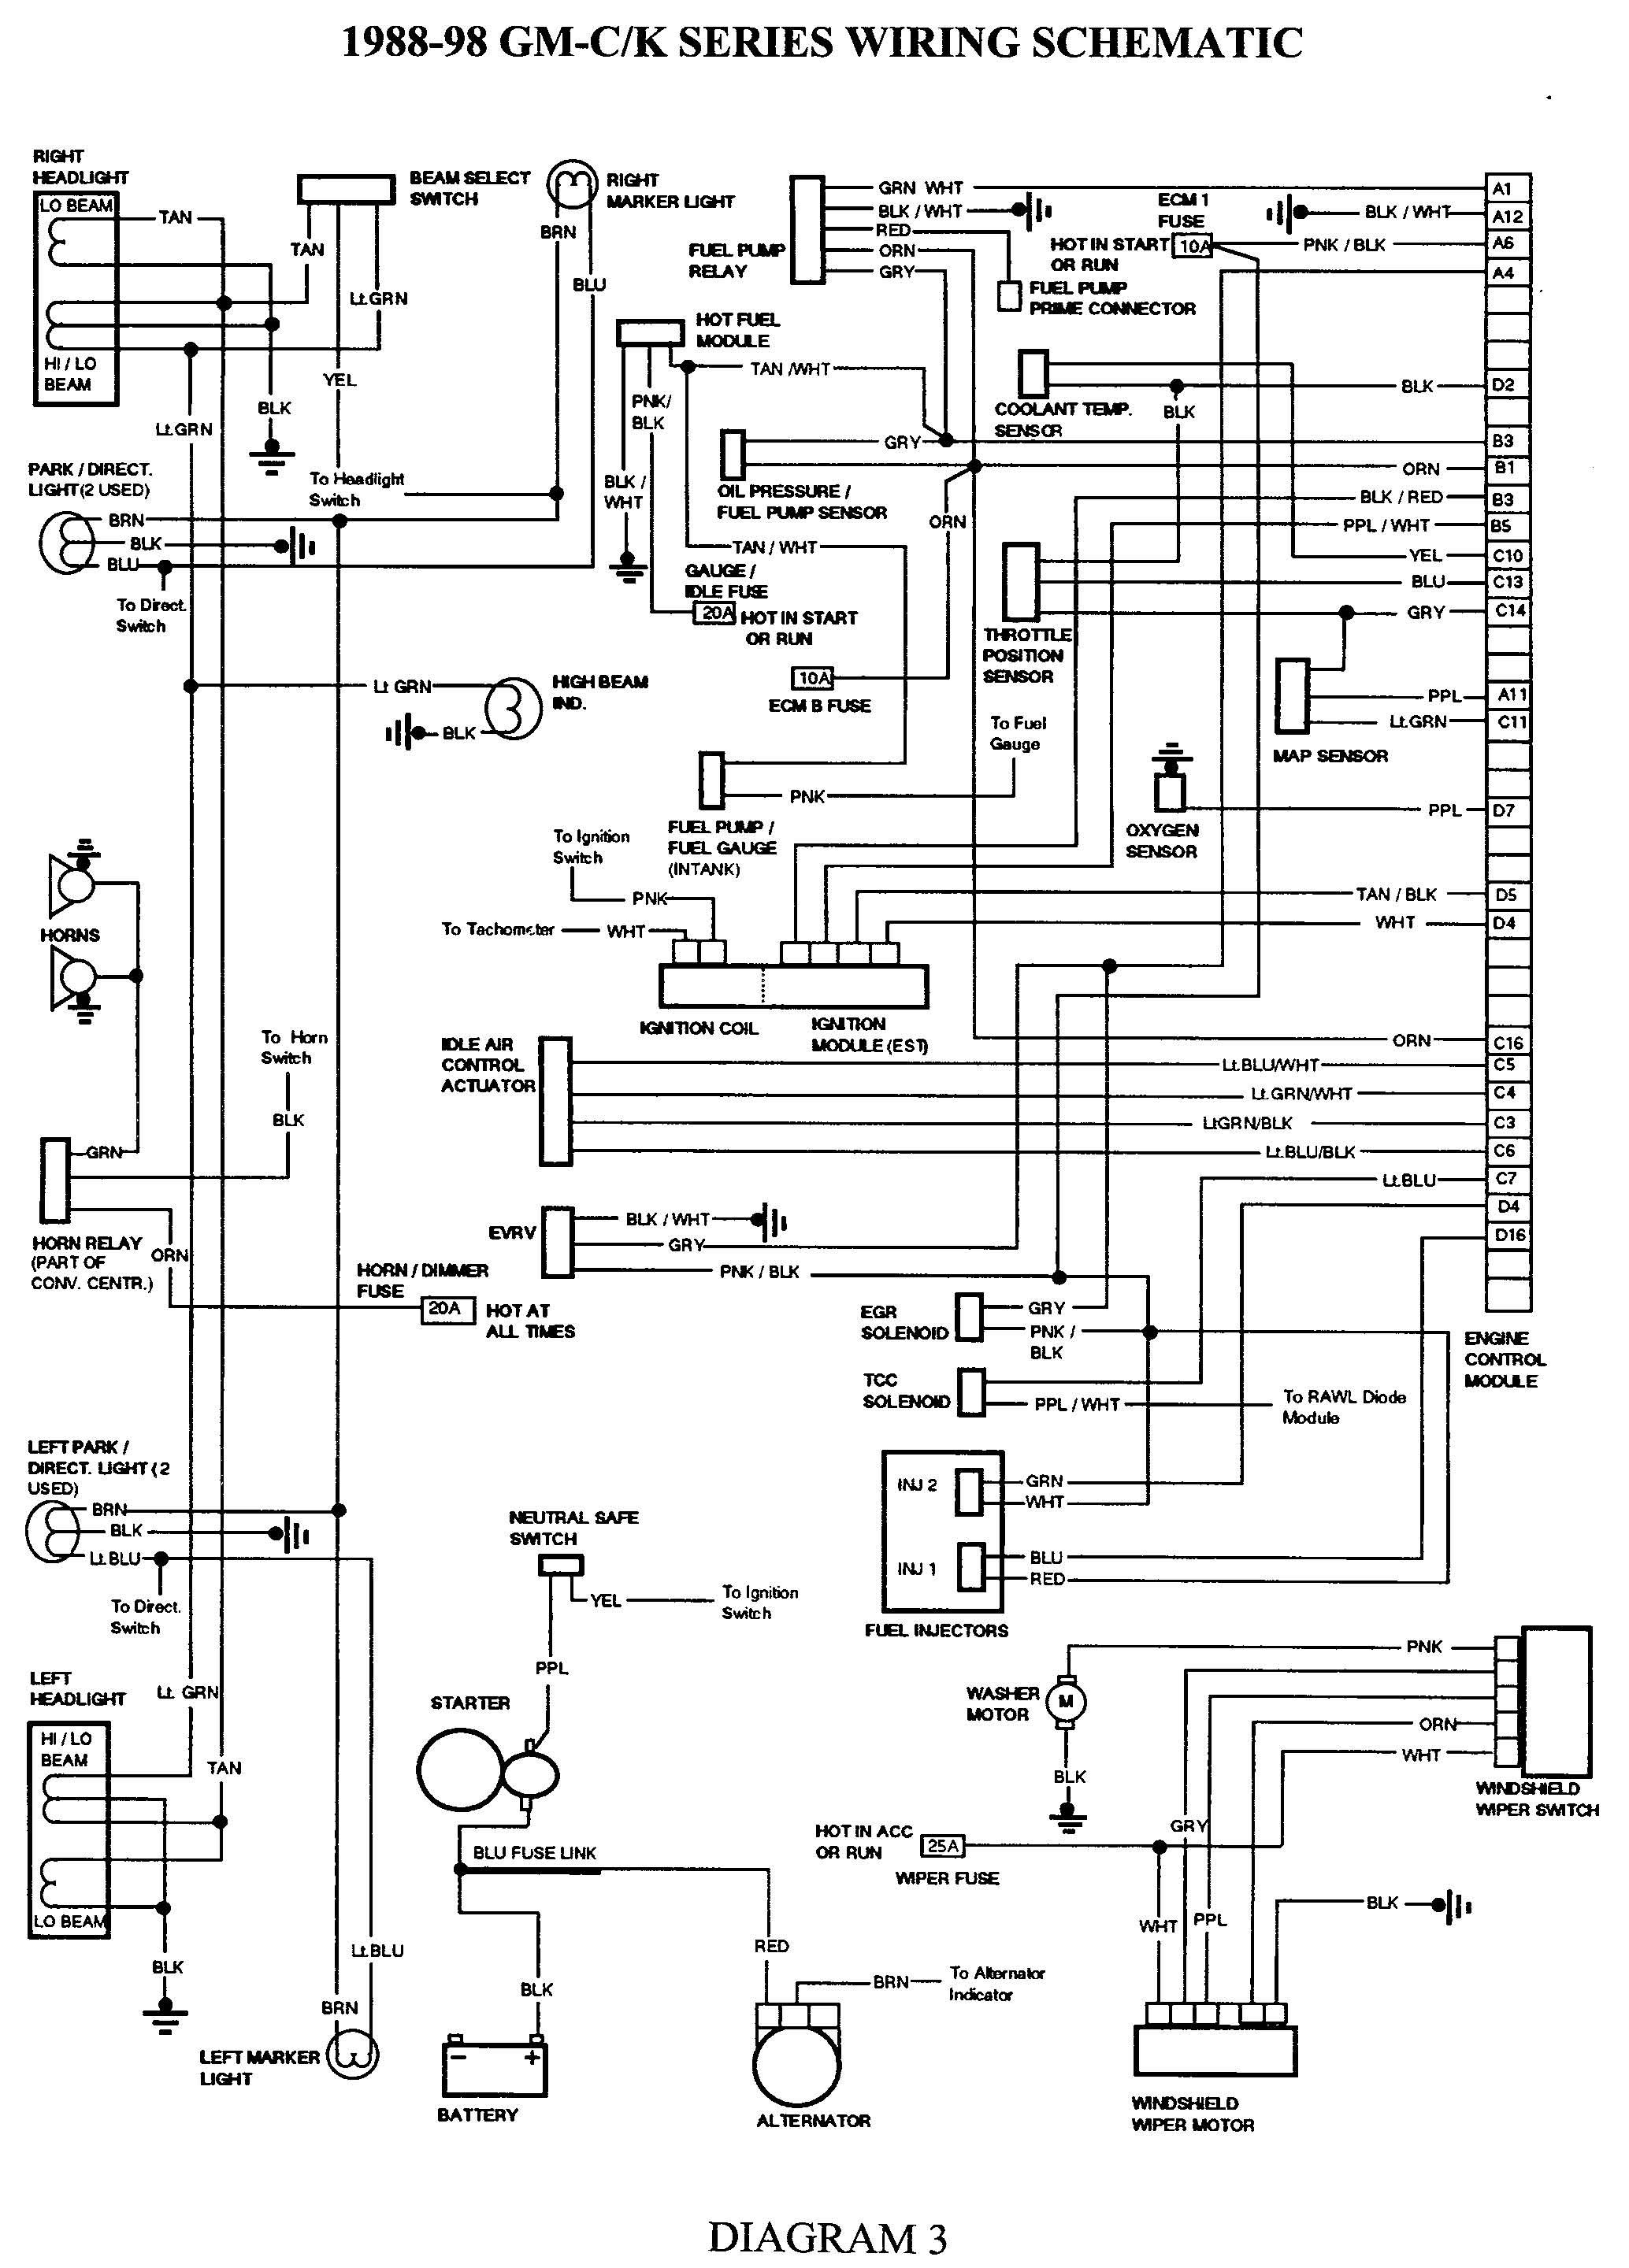 gmc truck wiring diagrams on gm wiring harness diagram 88 98 kc 98 GMC Sierra Blower Motor Wiring Diagram